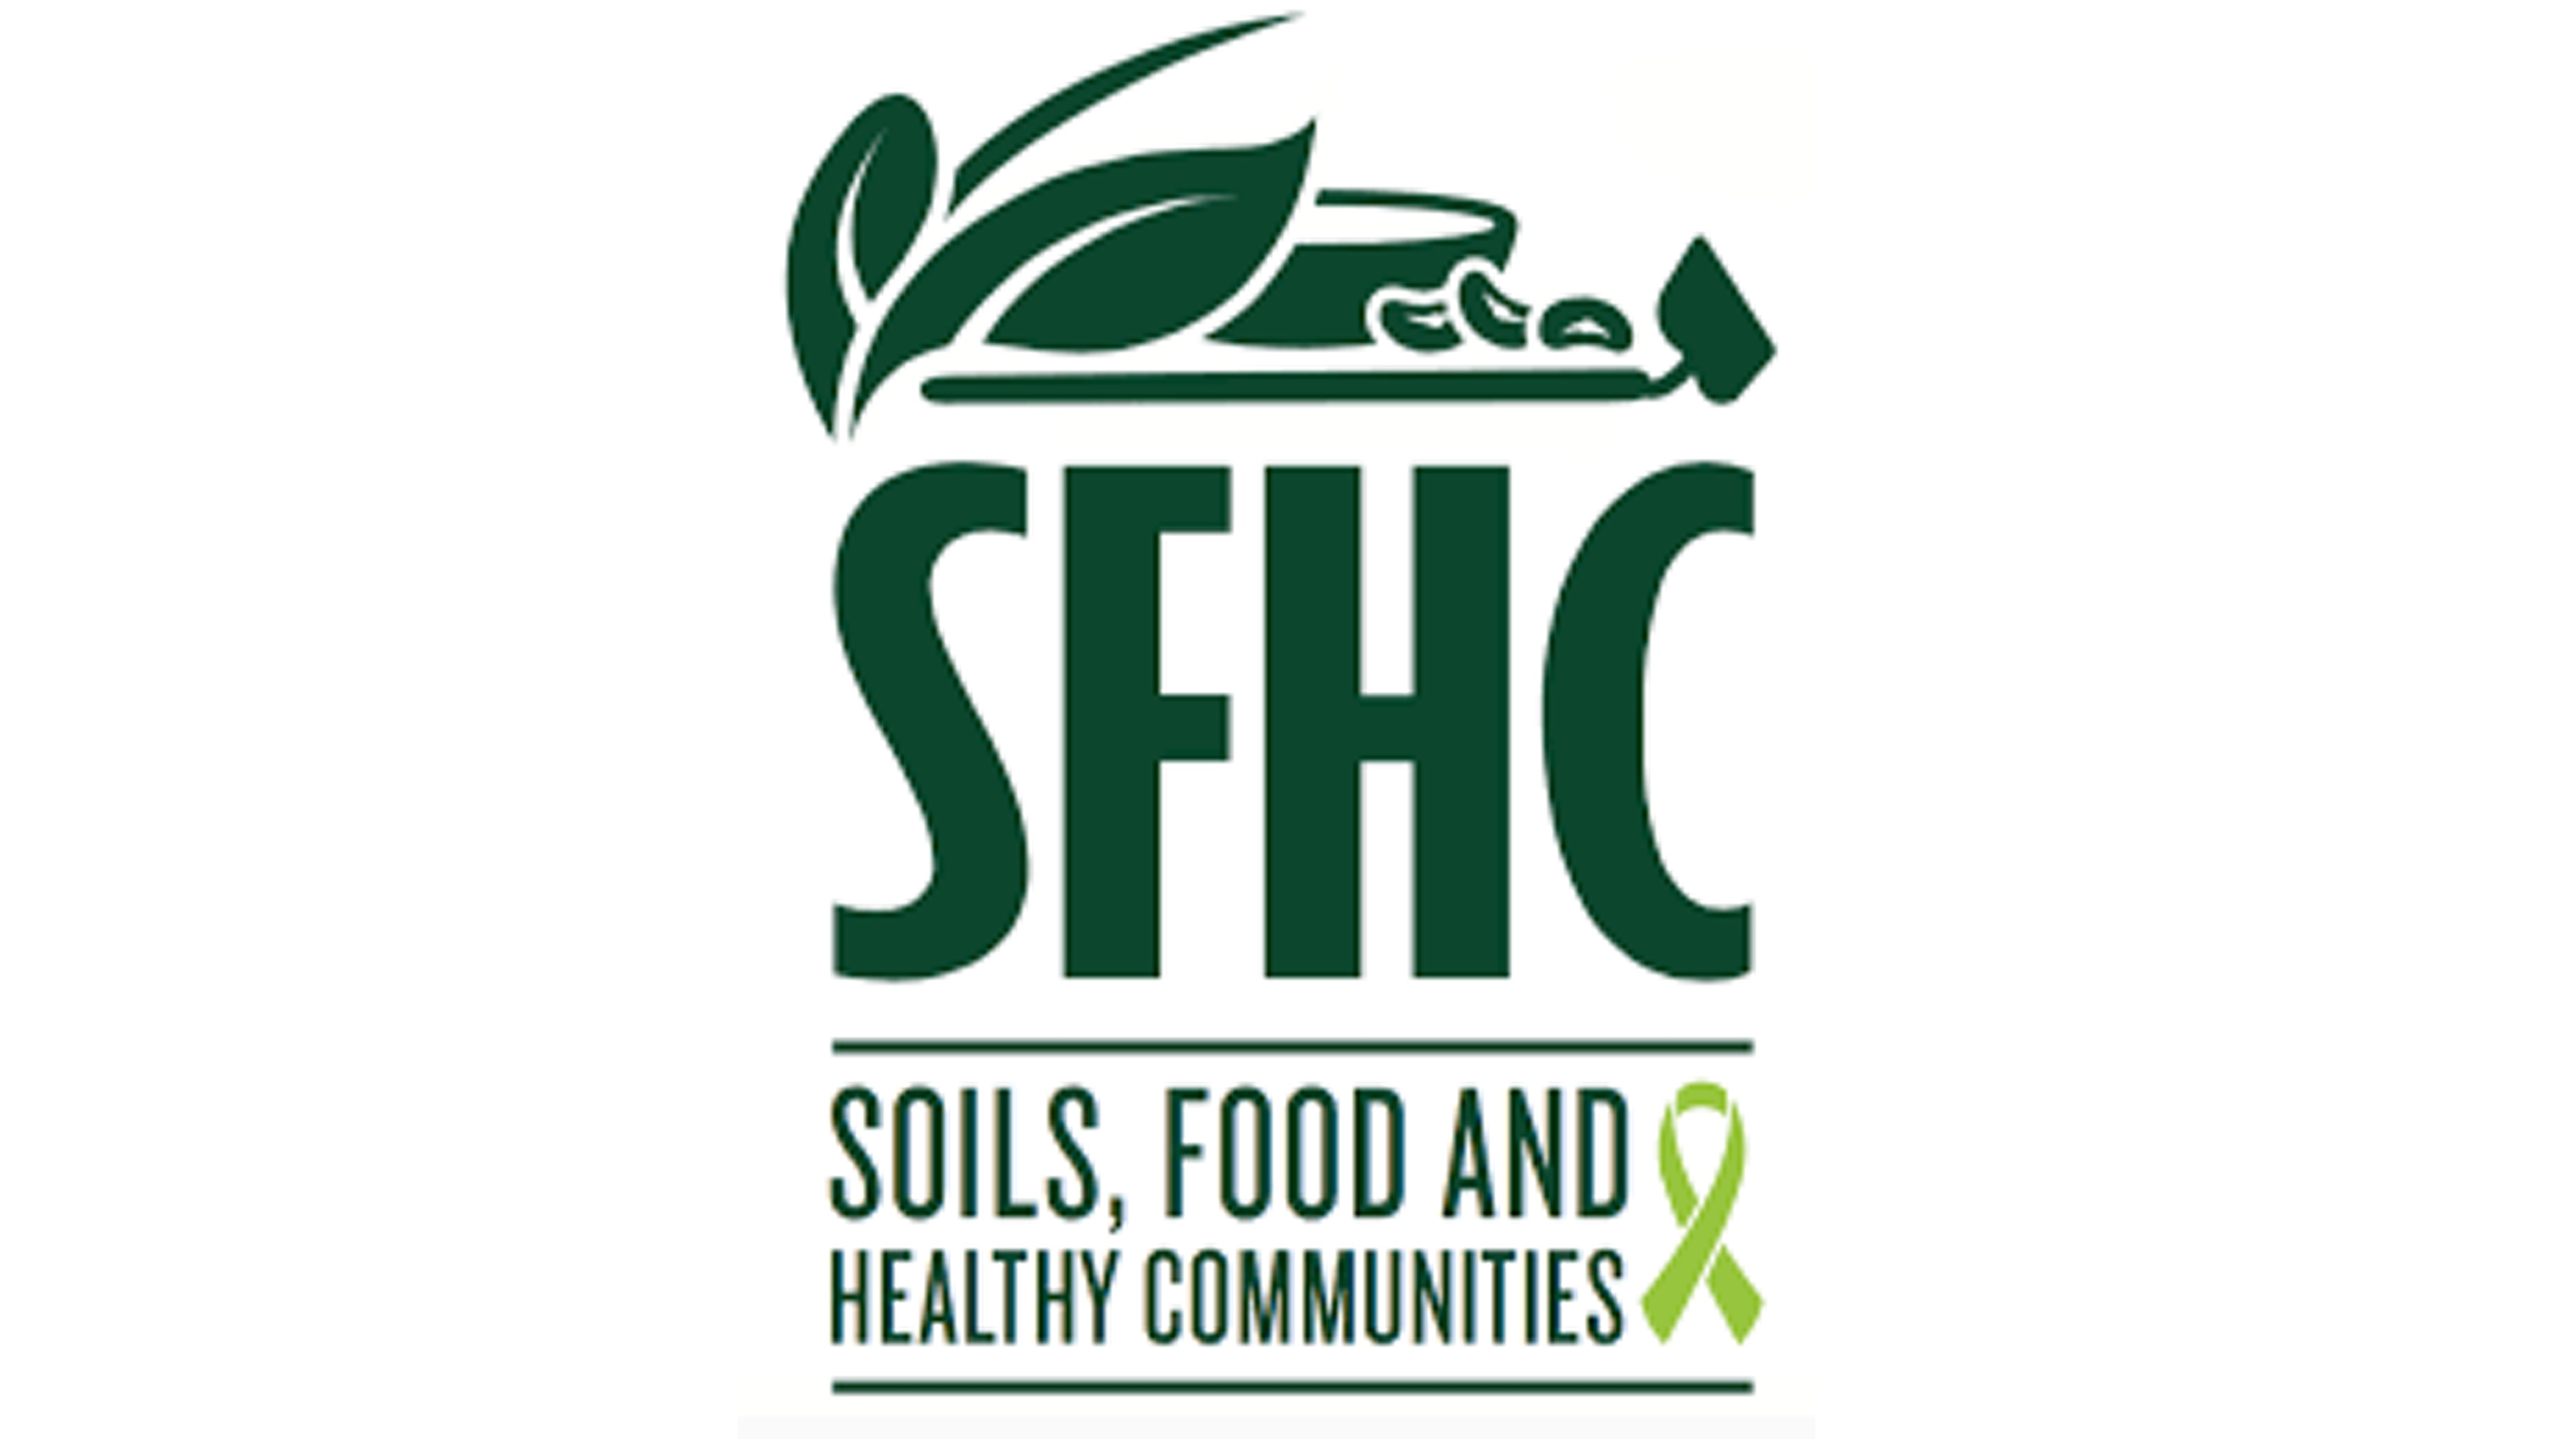 Soils, Food, and Healthy Communities